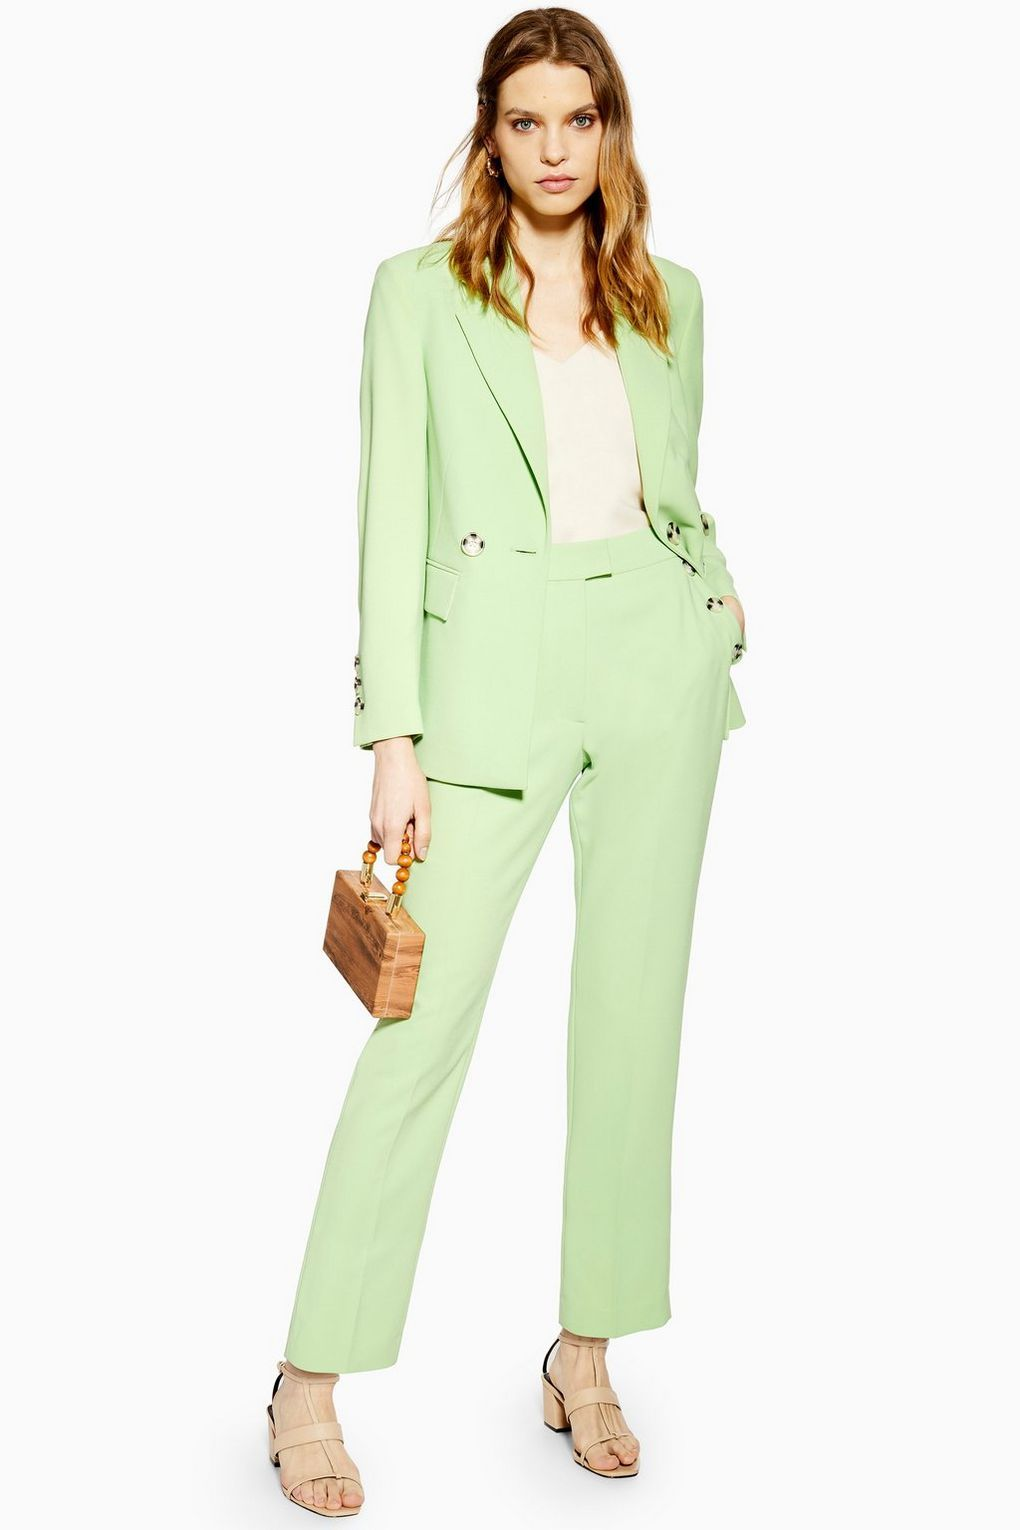 8dc4c2652f07 What to Wear to a Wedding 2019 - Wedding Fashion Dos and Don'ts